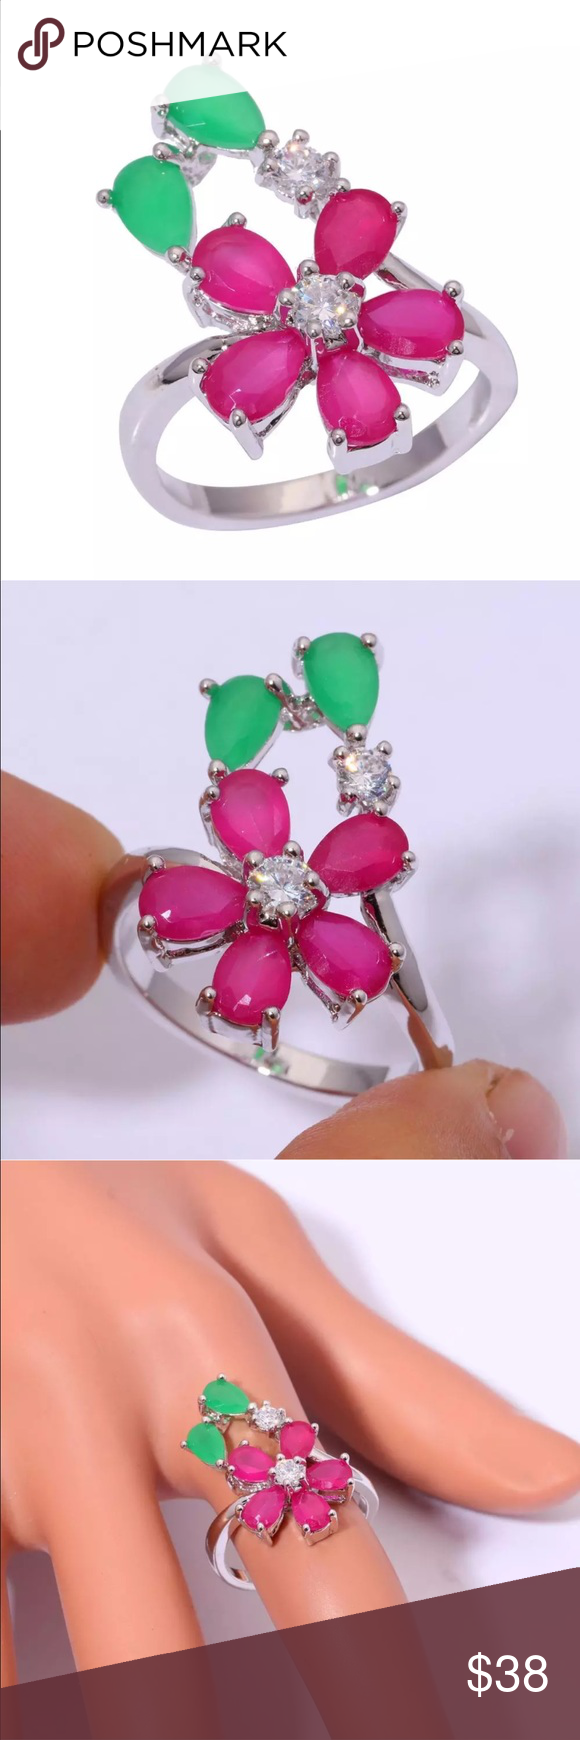 New with tags beautiful ruby zircon wedding ring New with tags ...